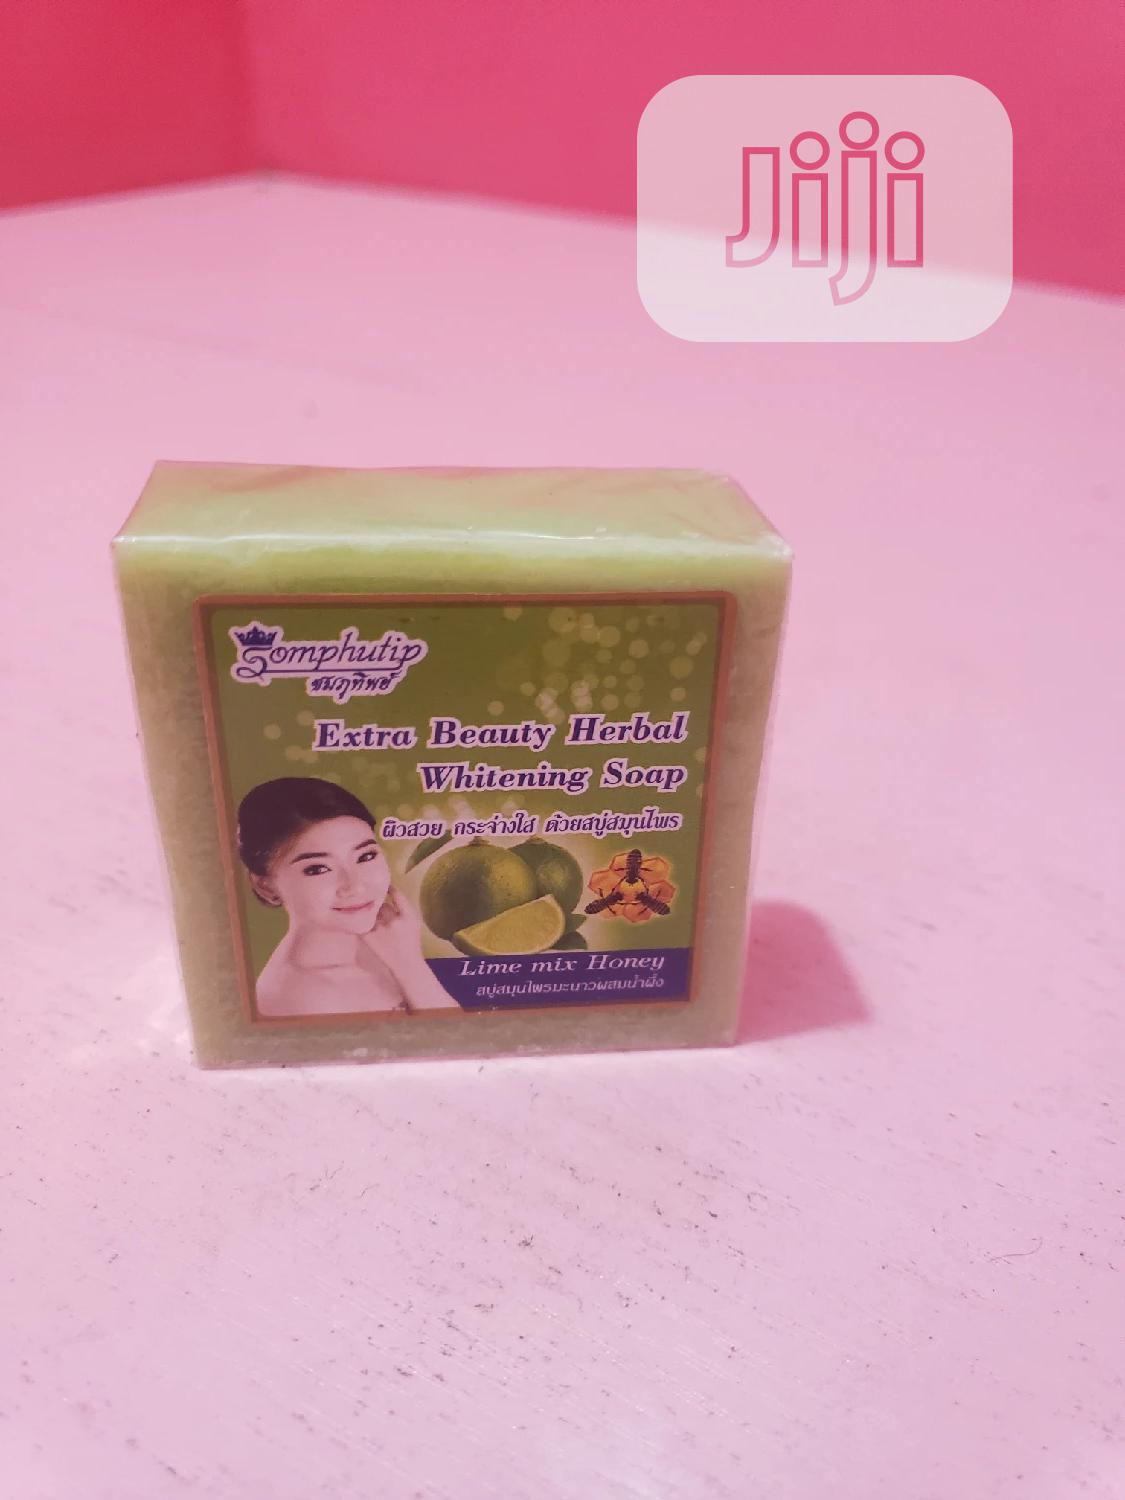 Extrq Beauty Herbal Whitening Soap